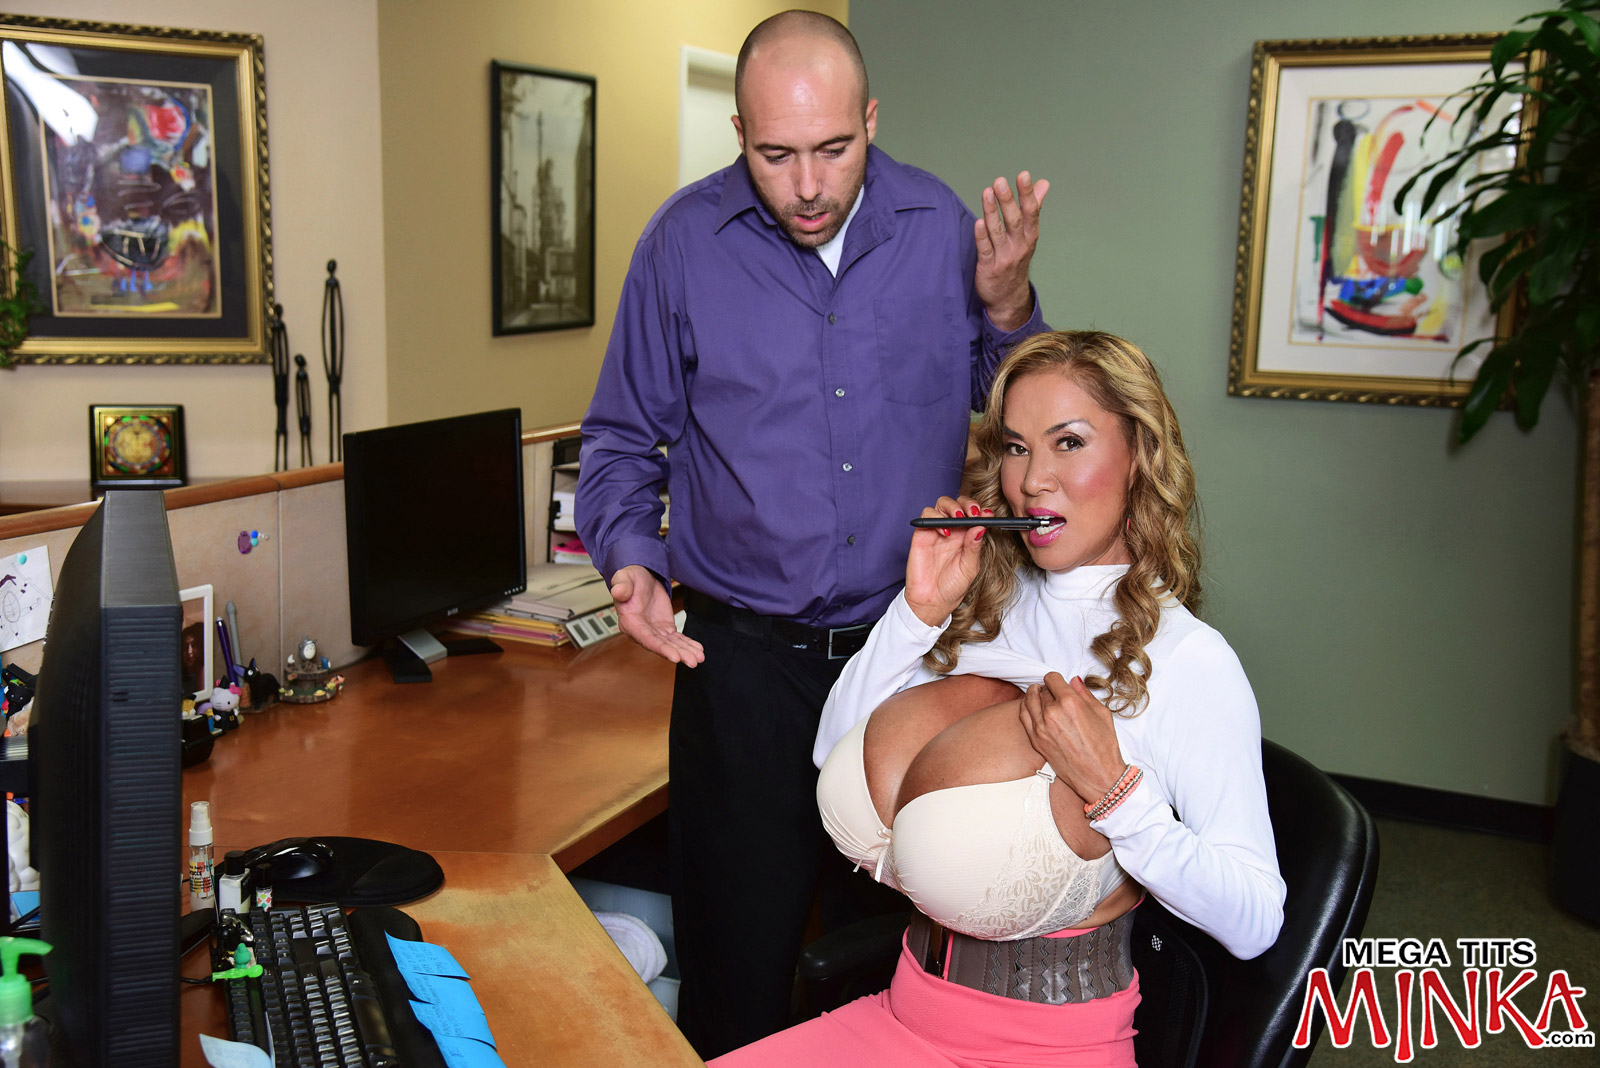 Mega-Boobs Office - Minka 50 Photos - Mega Tits Minka-6920